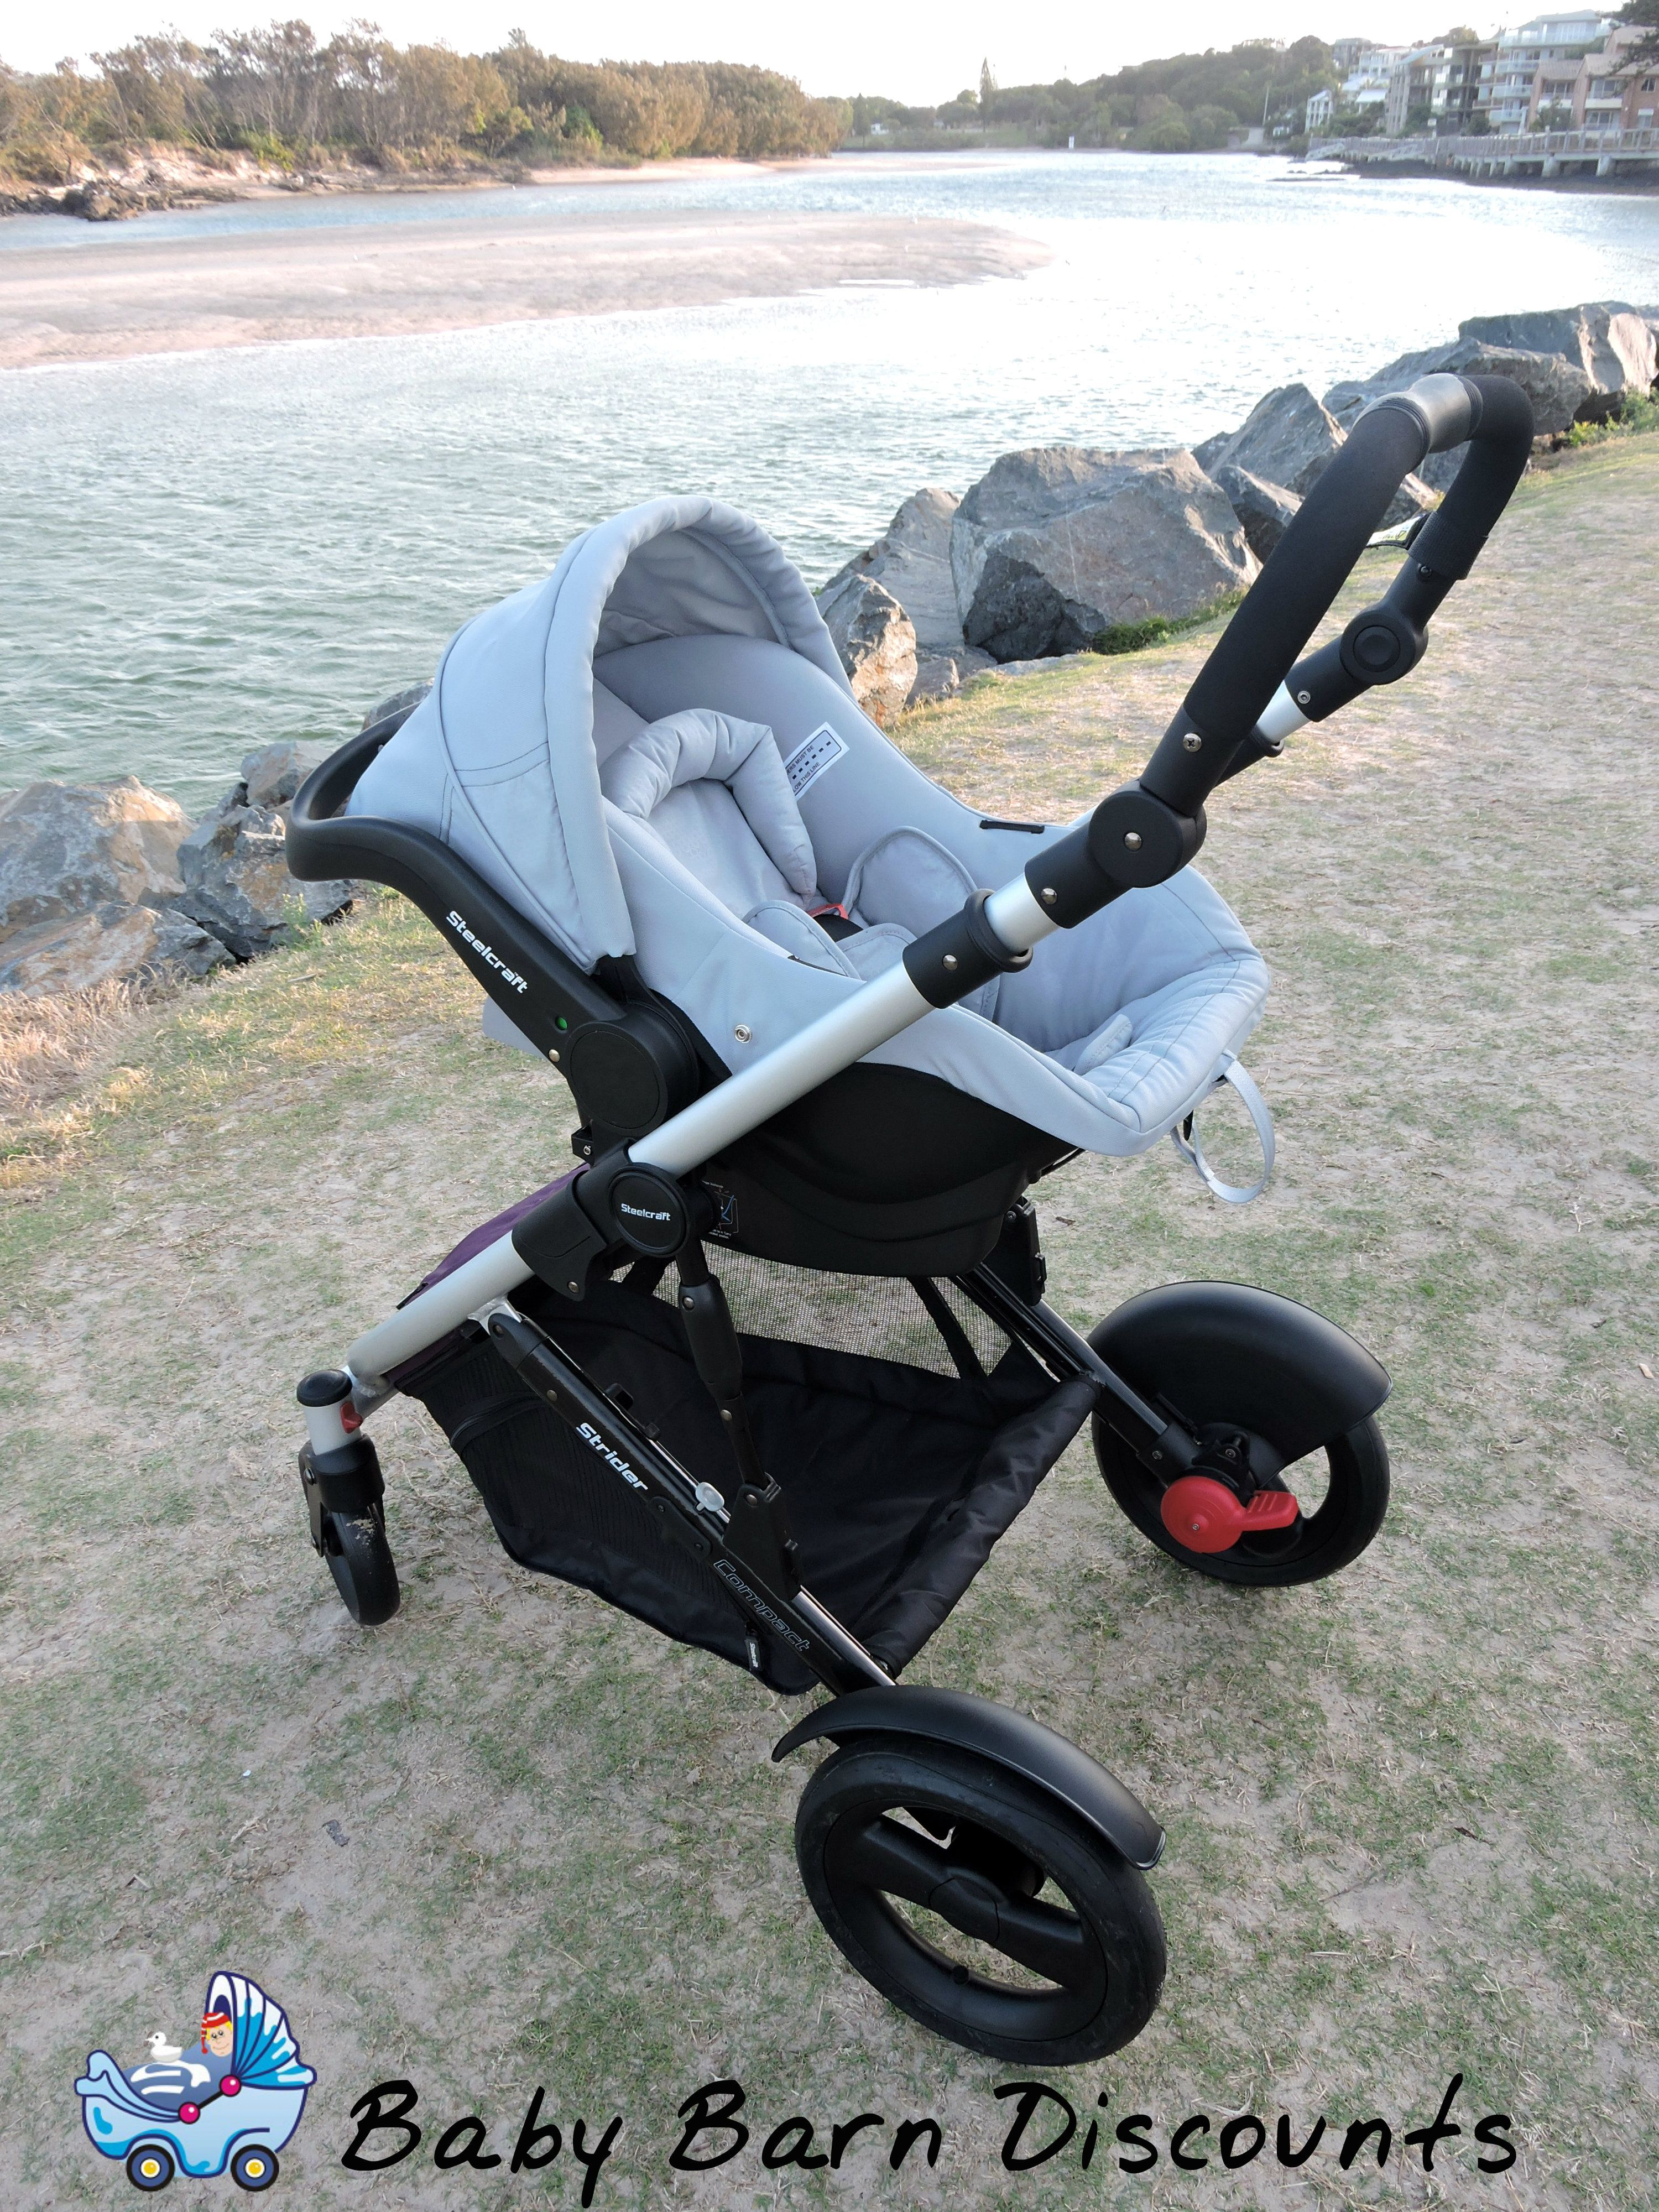 Steelcraft Strider Compact 2015 is Steelcraft carrier